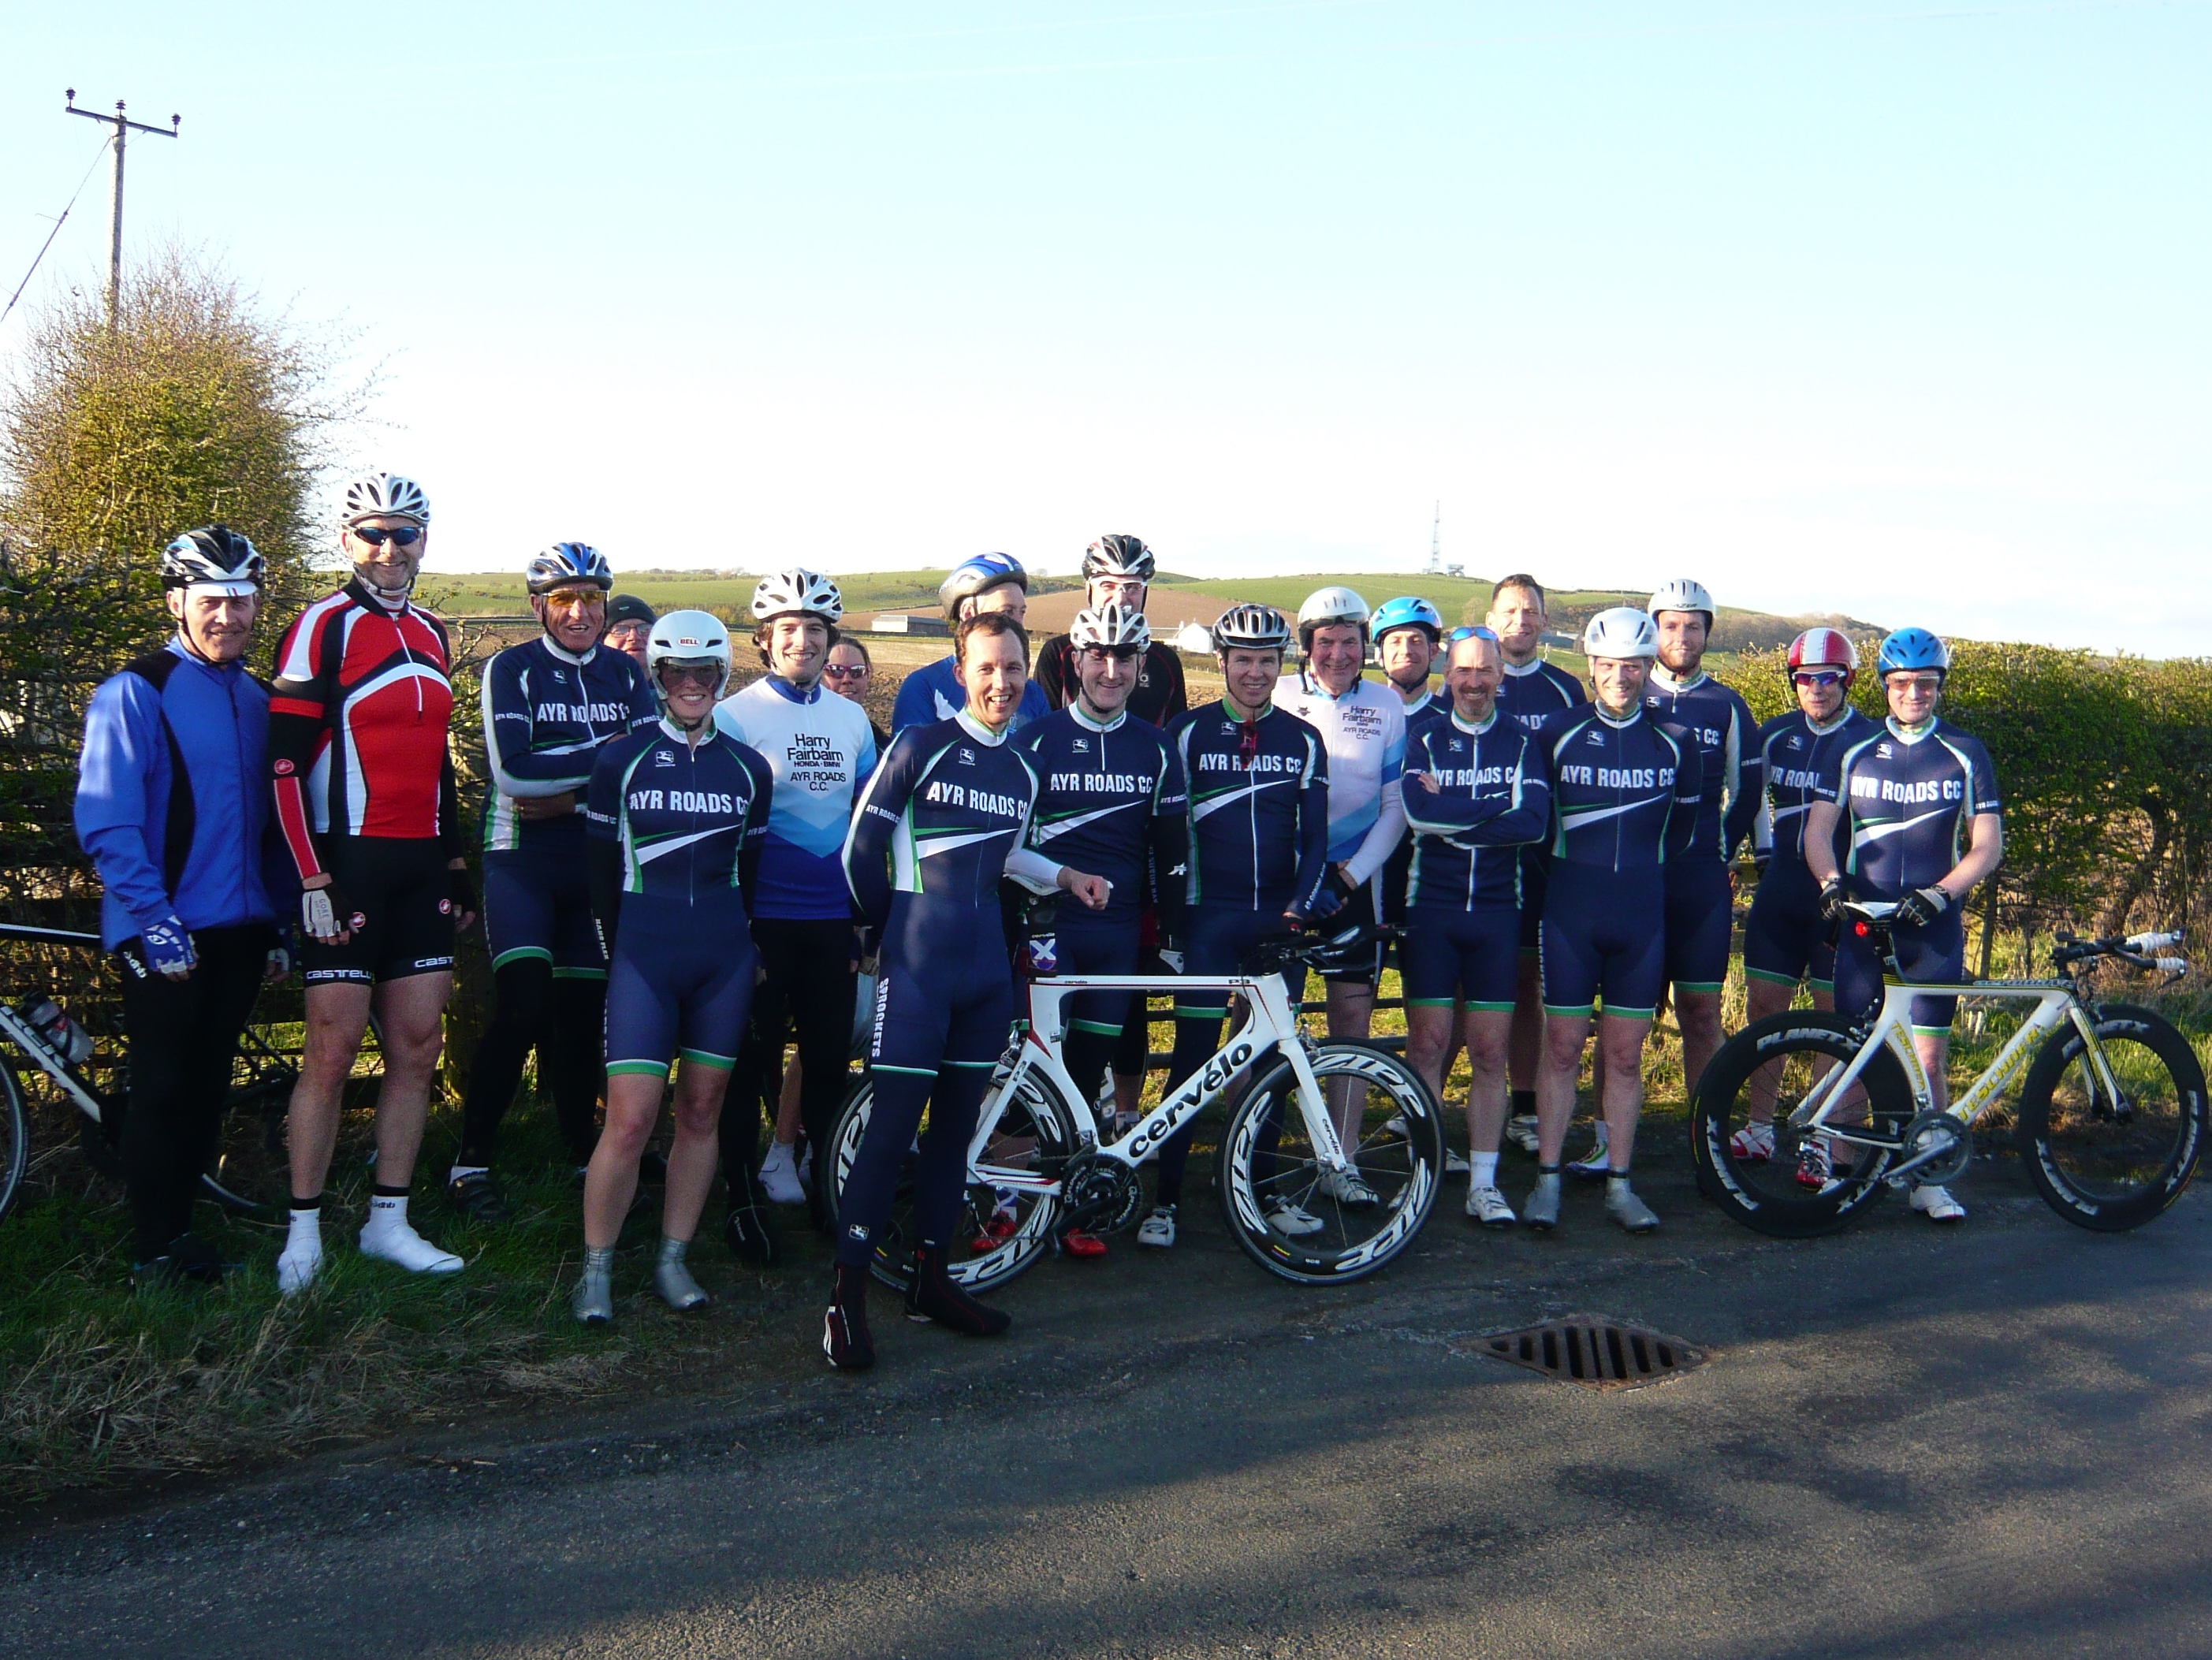 Image of 20 Ayr Roads Cycling Club members by the roadside